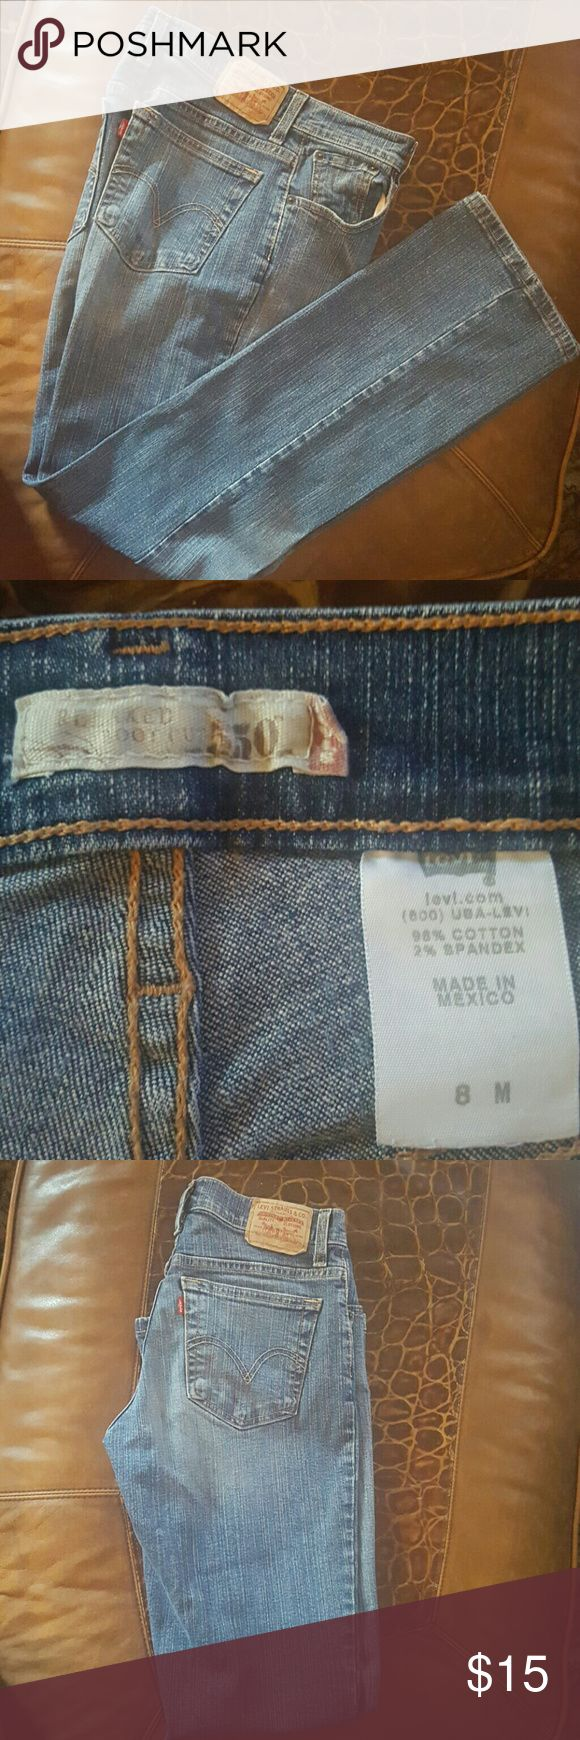 Vintage Levis 550 Vintage Levis 550 Mom Jeans excellent condition Levi's Jeans Straight Leg